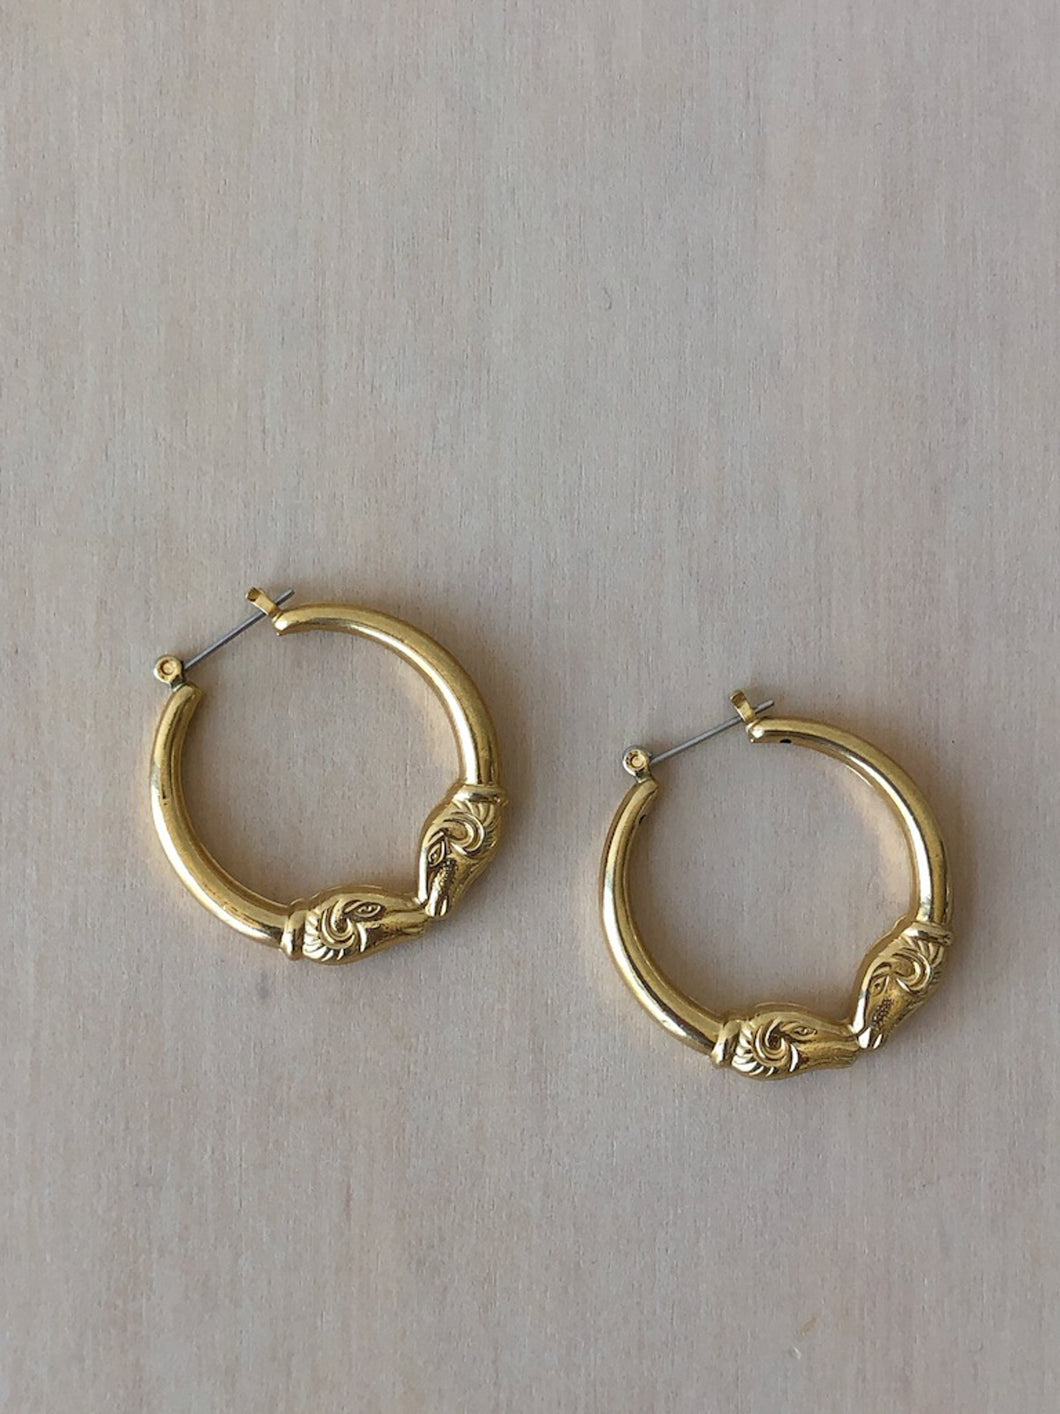 Vintage Gold-Plated Ram Hoops